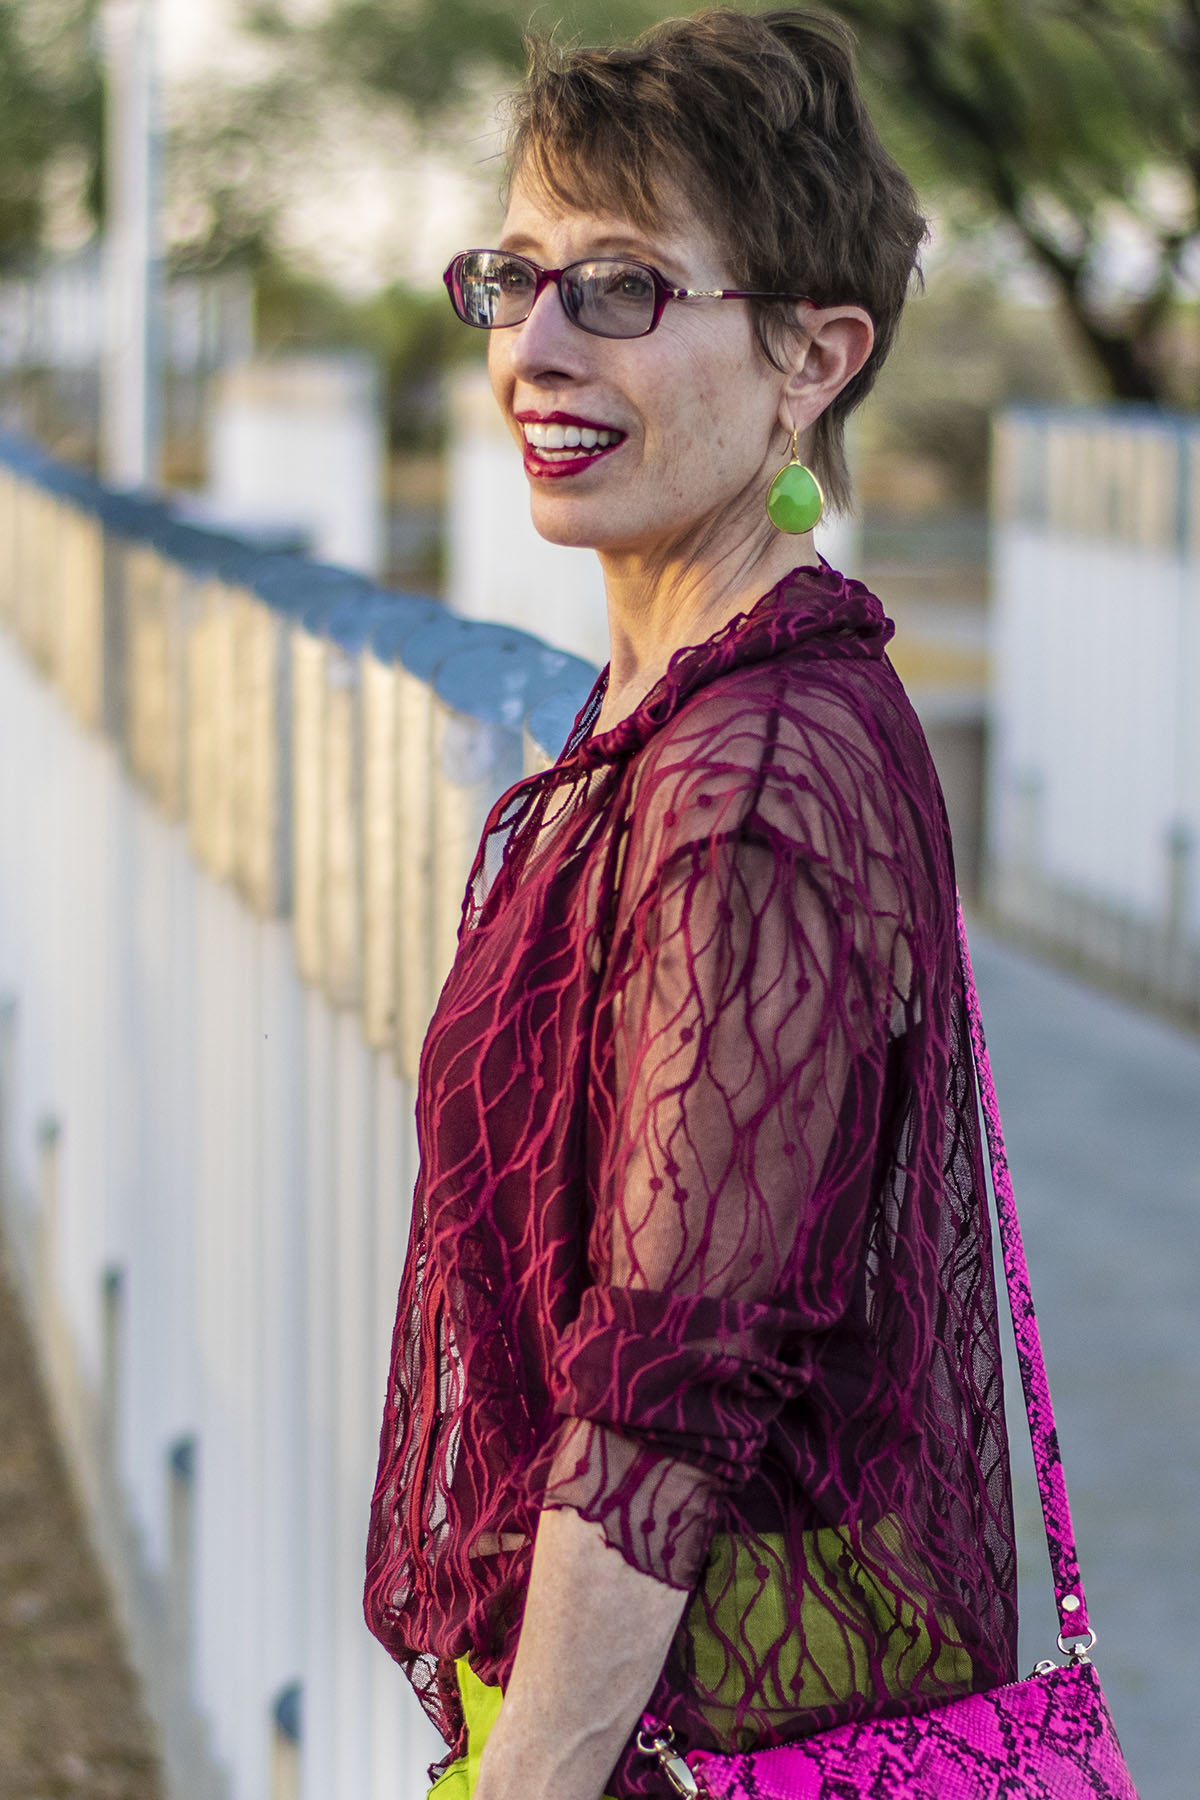 Bold Burgundy Outfit: Practical Ways to Style a Fall Color For Springtime